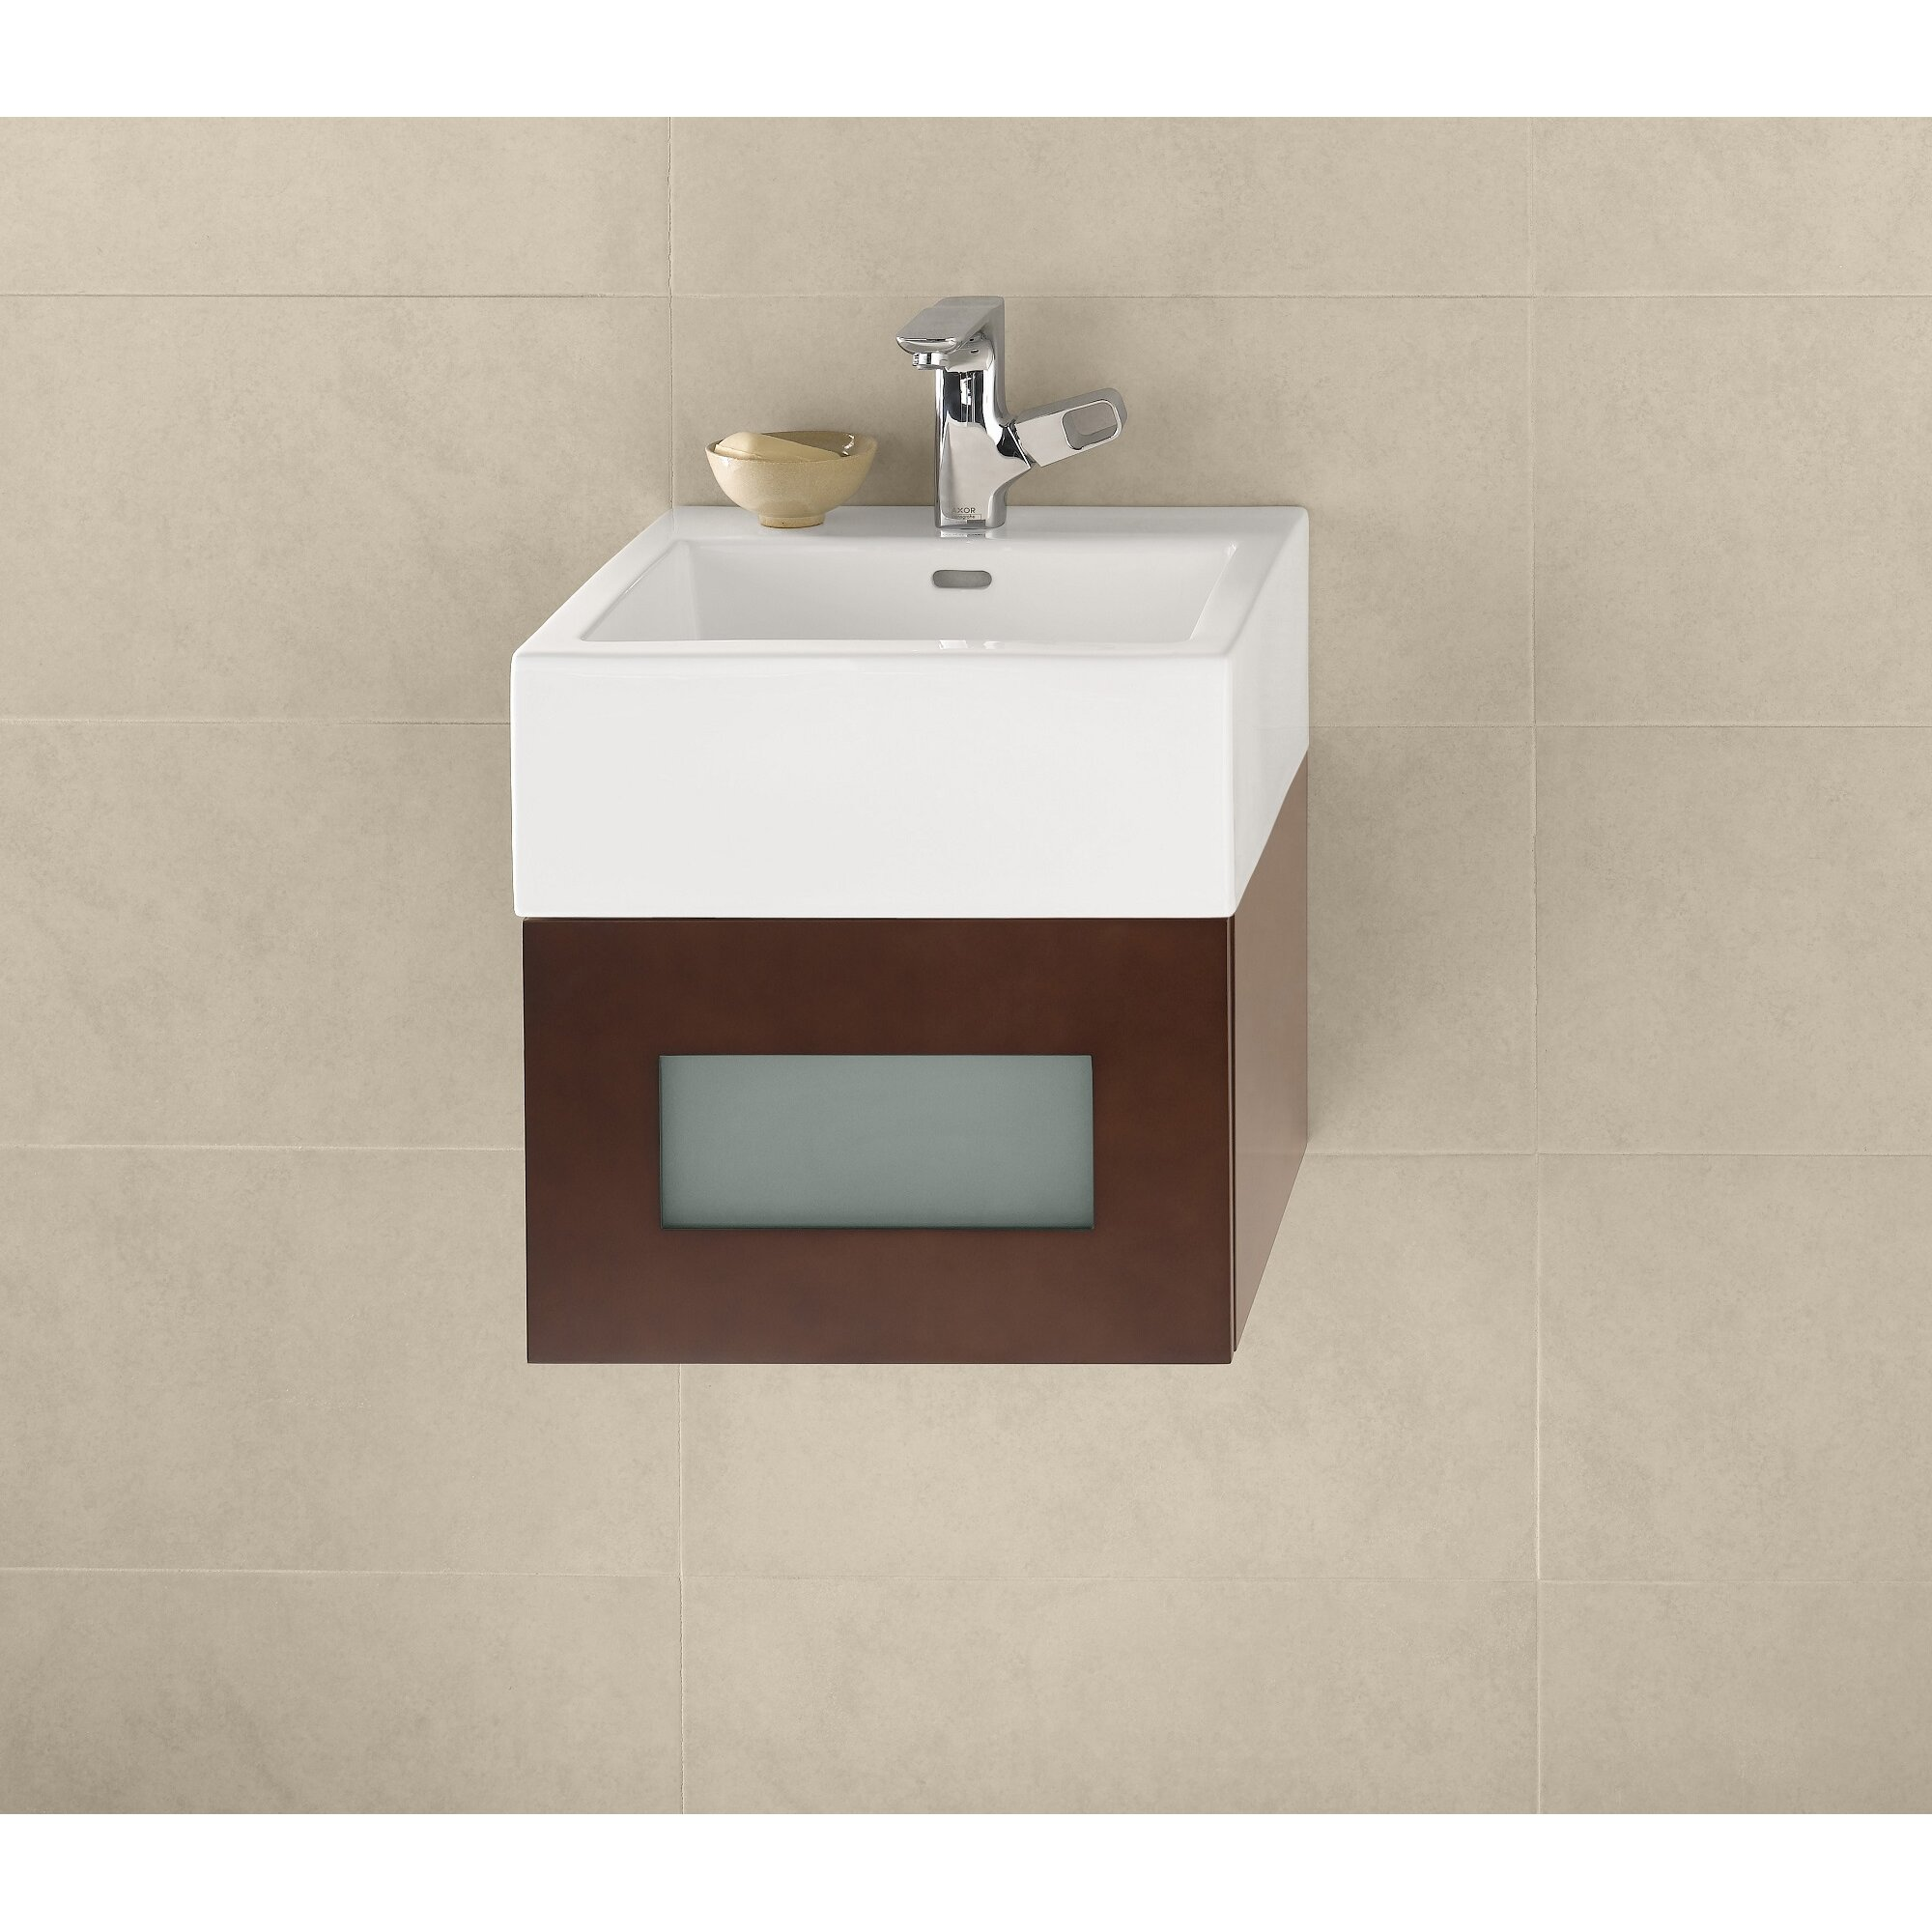 Square bathroom sinks - Ronbow Ceramic Square Vessel Bathroom Sink With Overflow